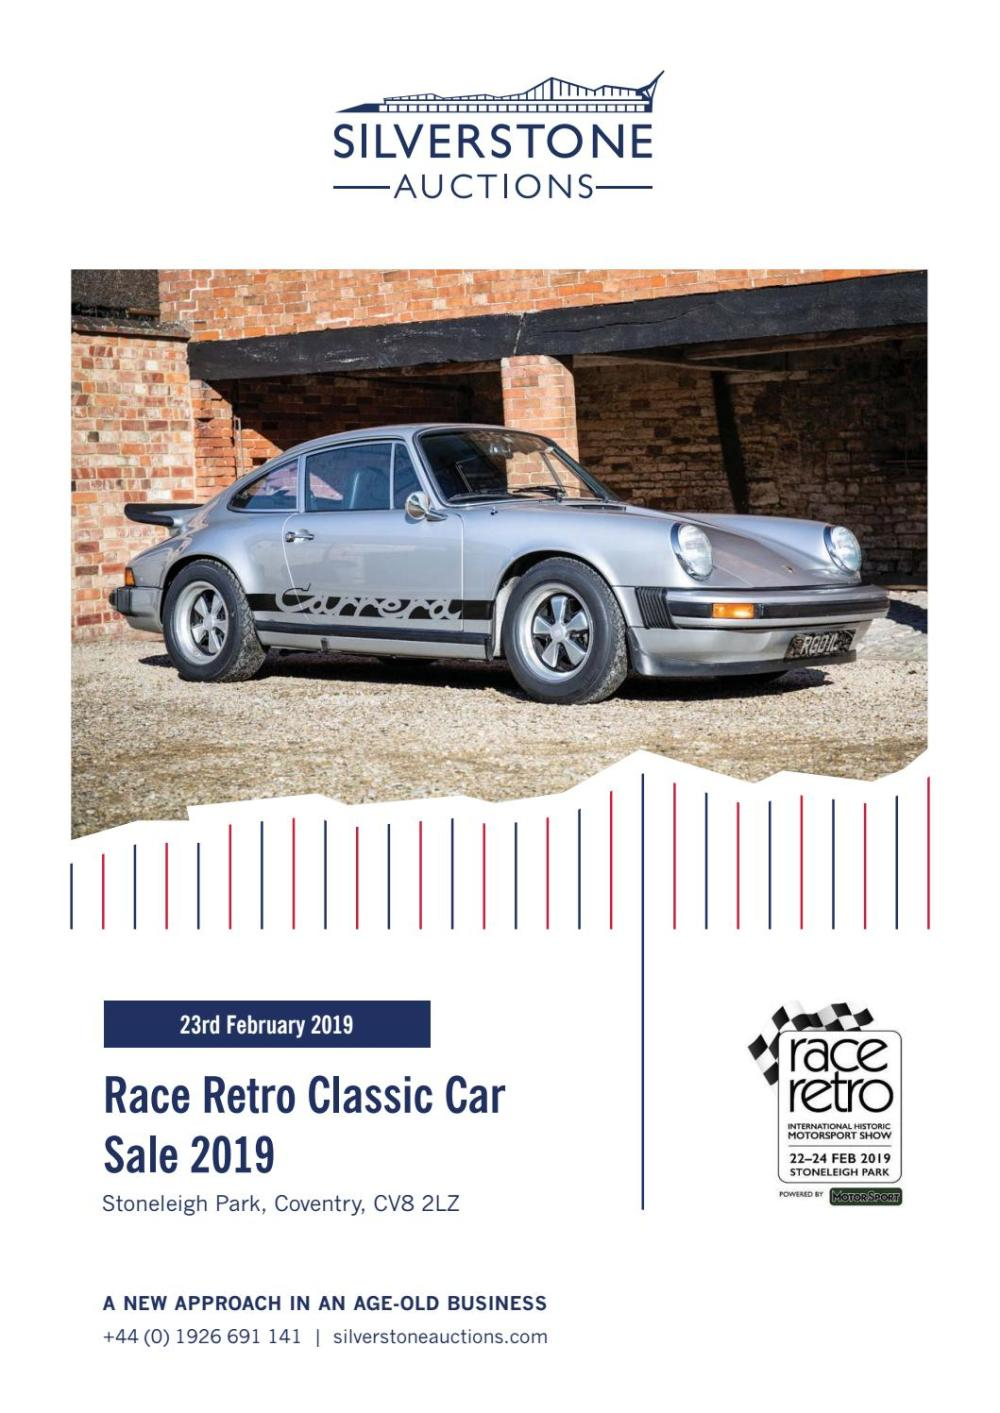 medium resolution of silverstone race retro classic car sale 2019 23rd february 2019 by silverstone auctions issuu